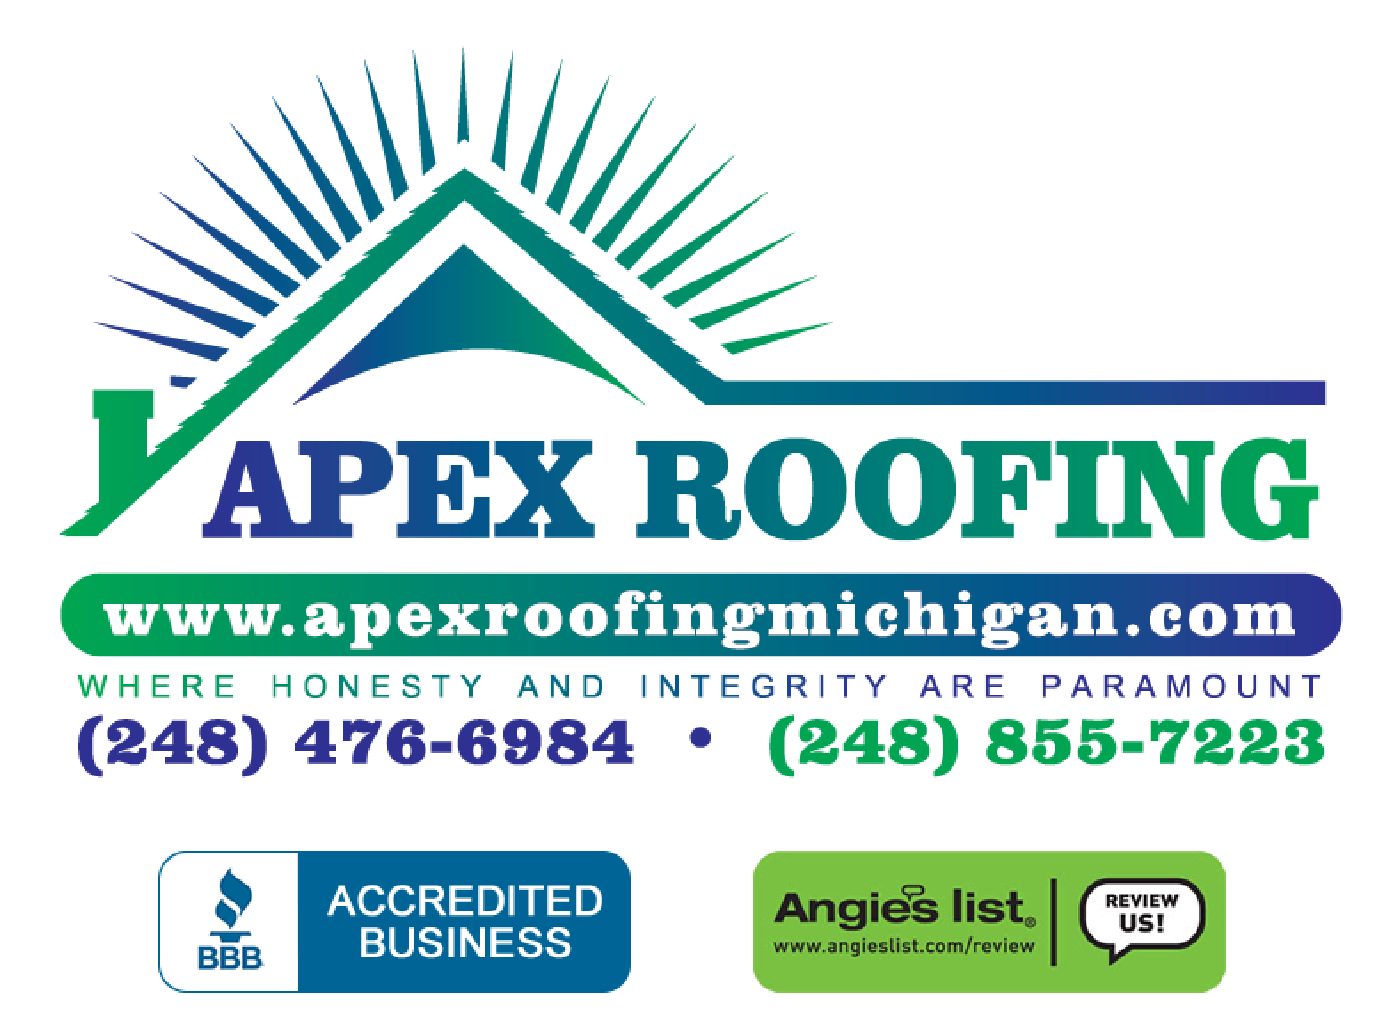 APEX Roofing - Roofing Construction in Southeast Michigan